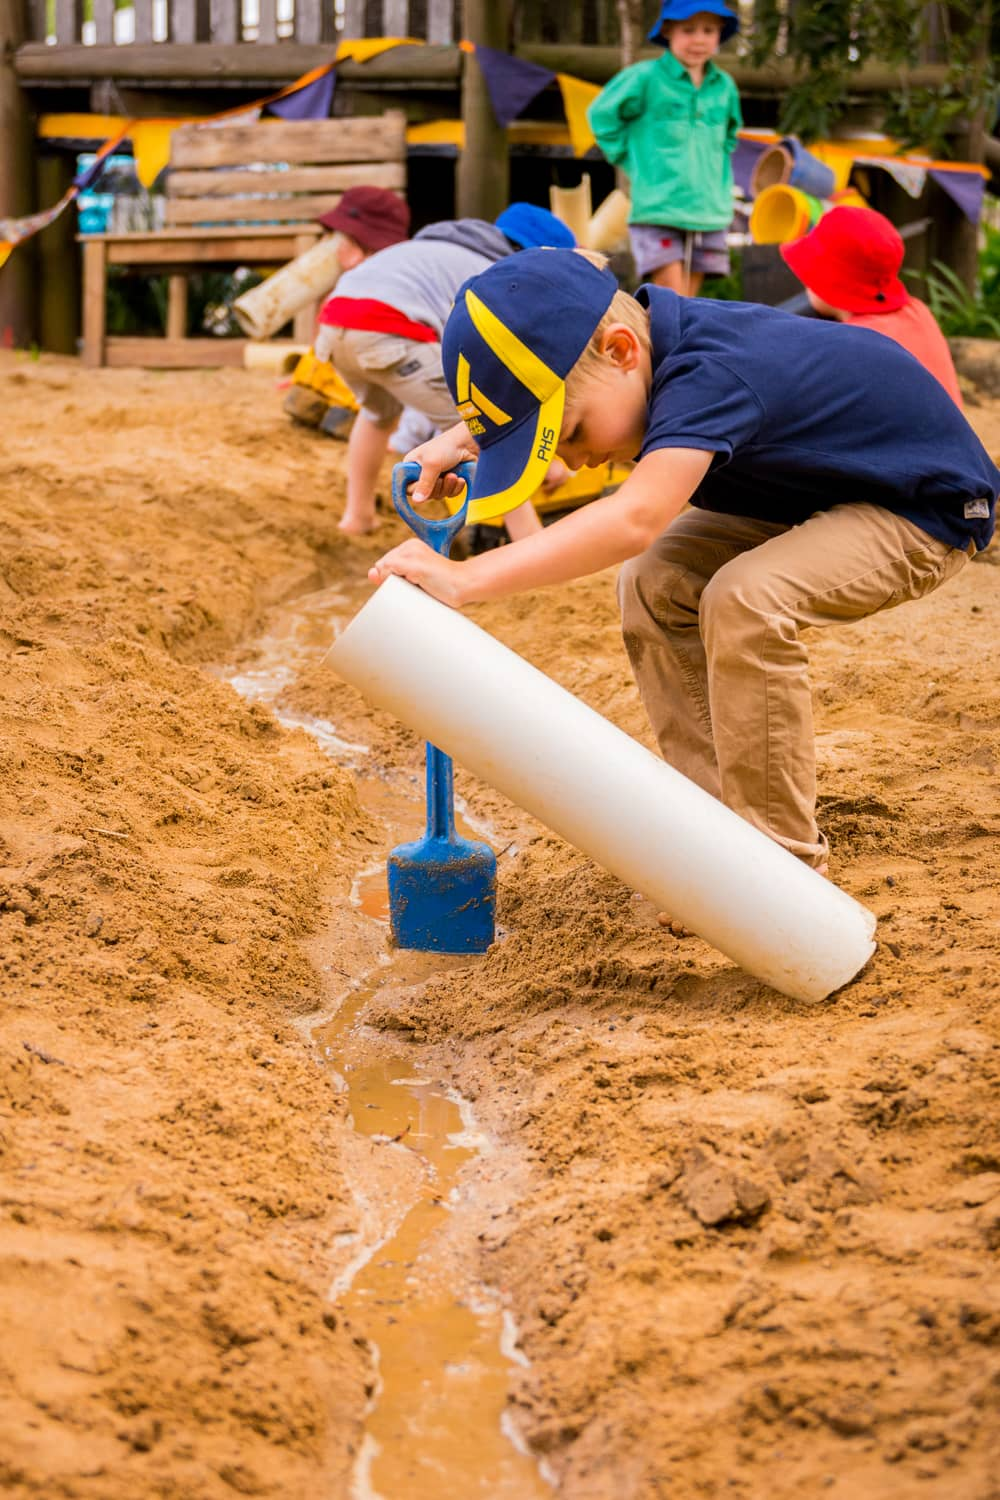 Children playing in kindy sandpit with spades and white pipe